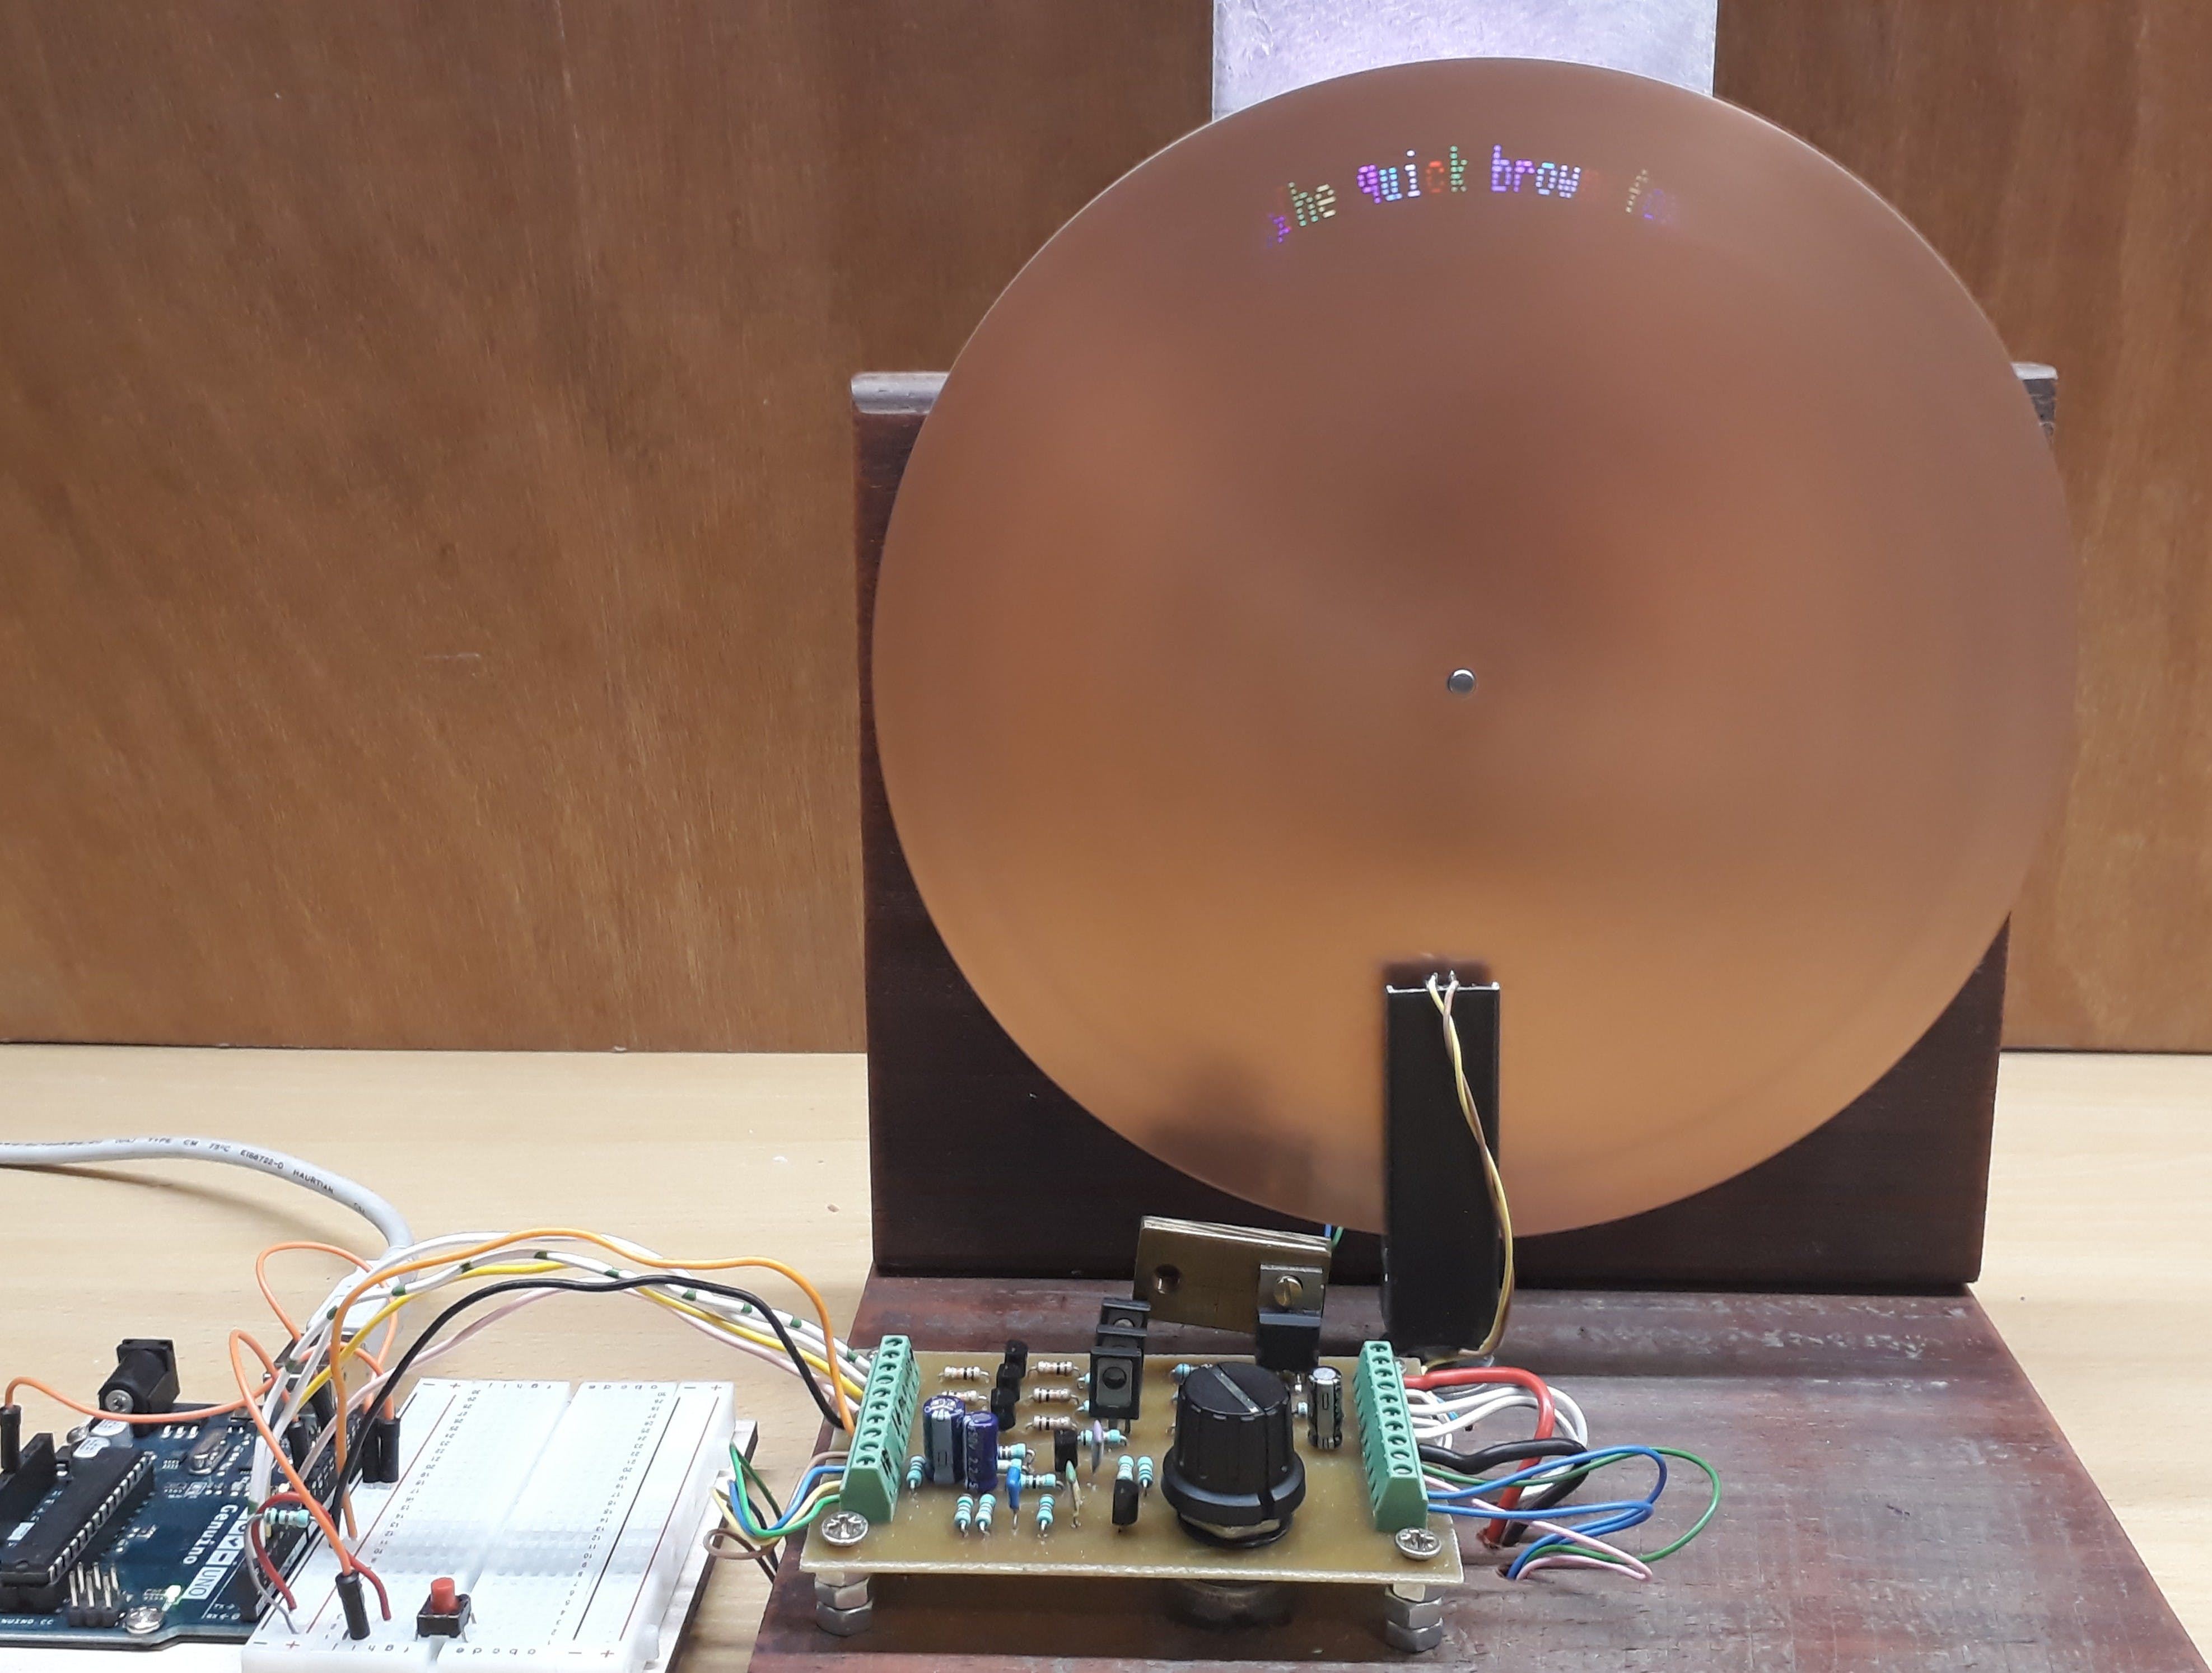 Nipkow Disk Based Digital Display Device